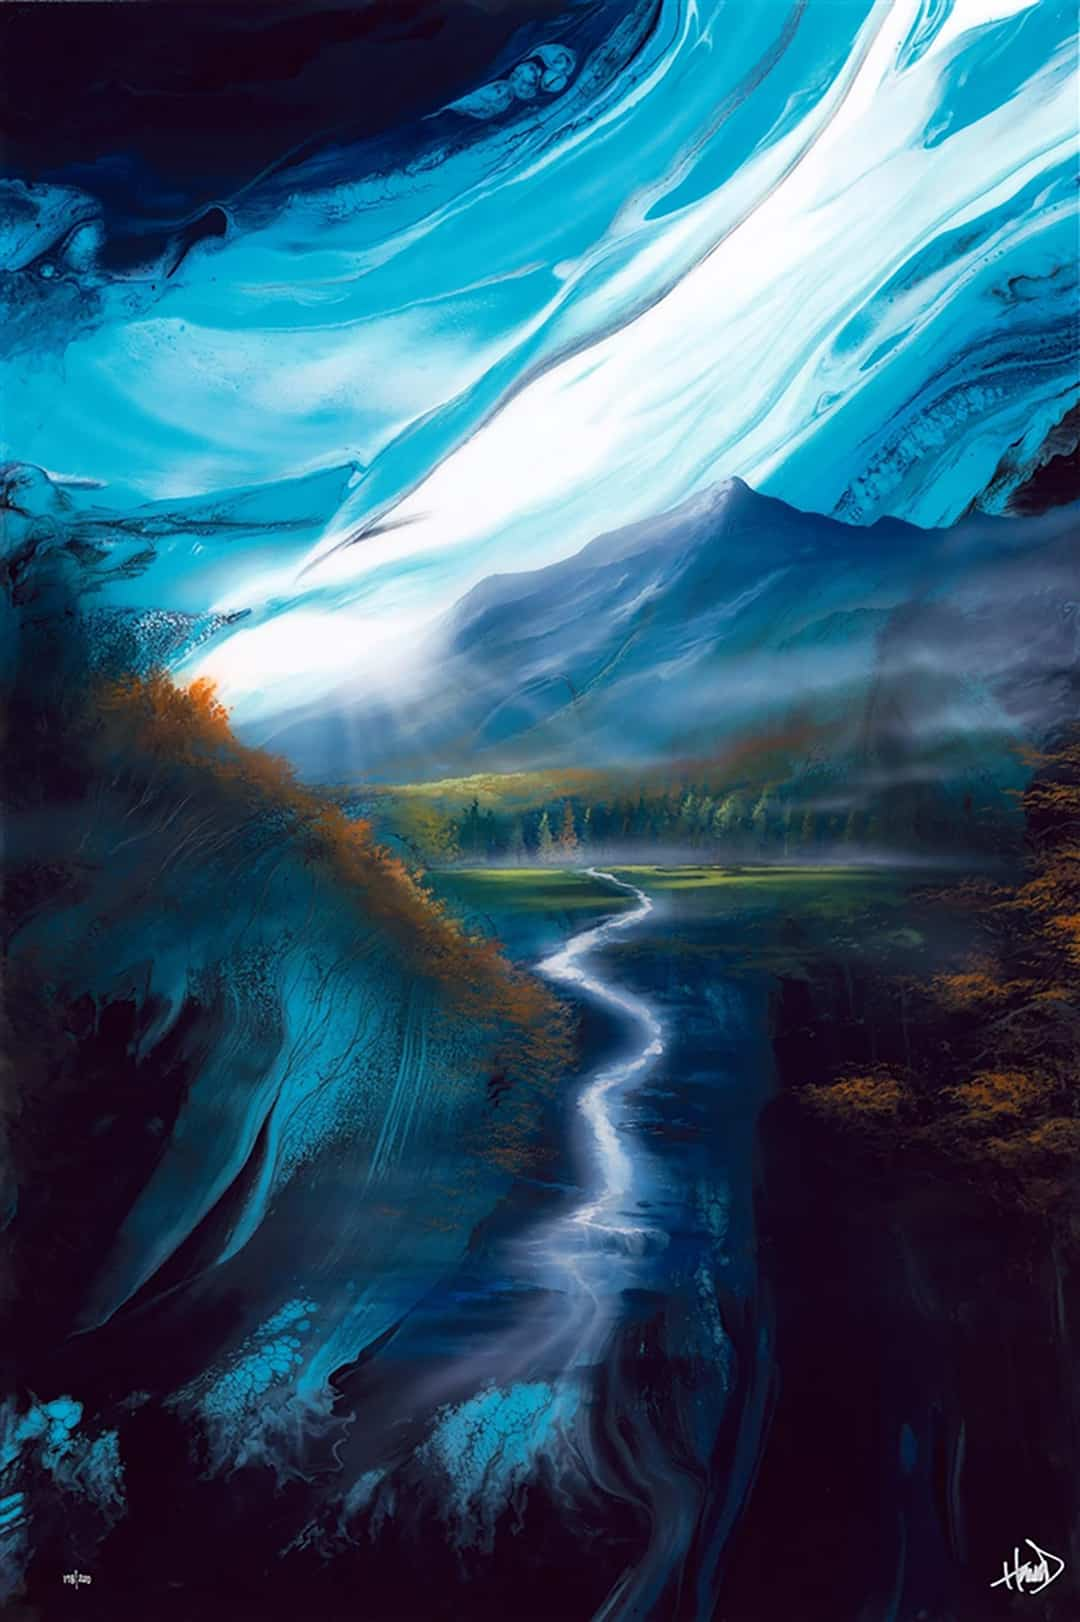 Ashton howard painting of a mountain valley with a river running through it